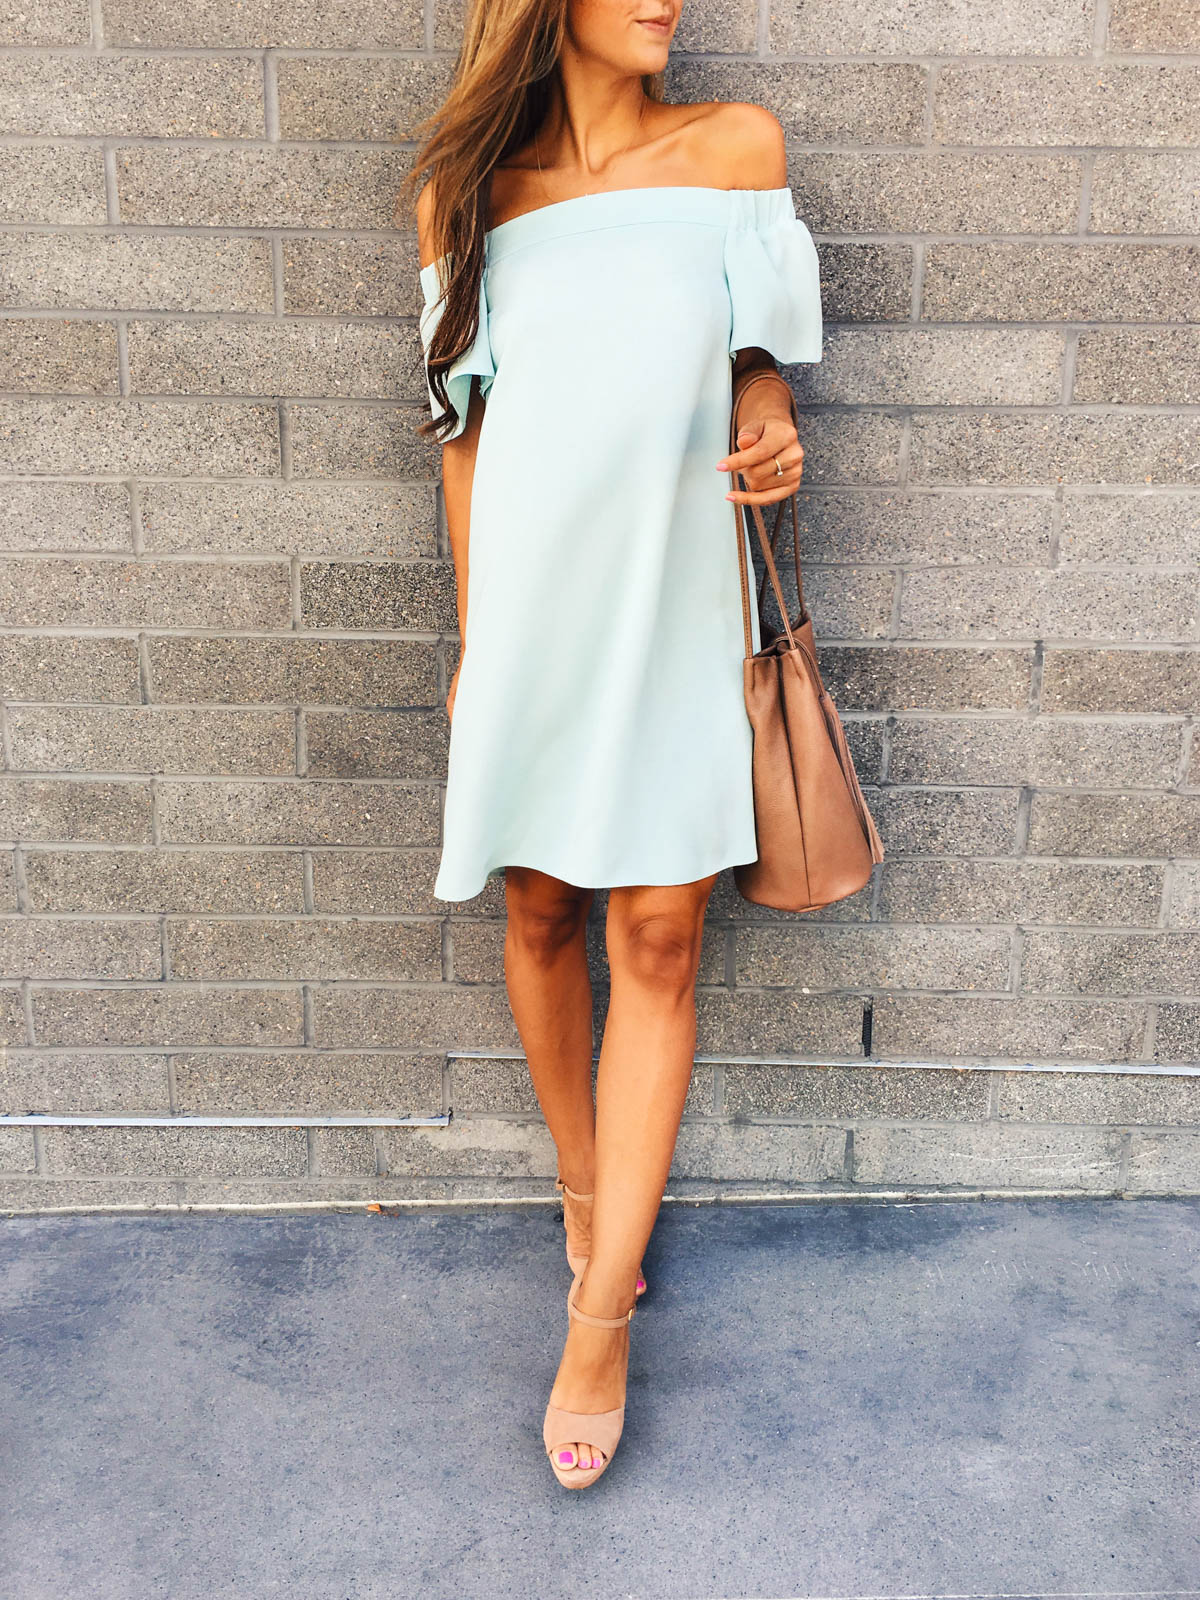 This outfit just oozes summer! The off-the-shoulder dress is the perfect way to show some skin, especially with its vibrant and flattering blue colour. Dress/Shoes: Nordstrom